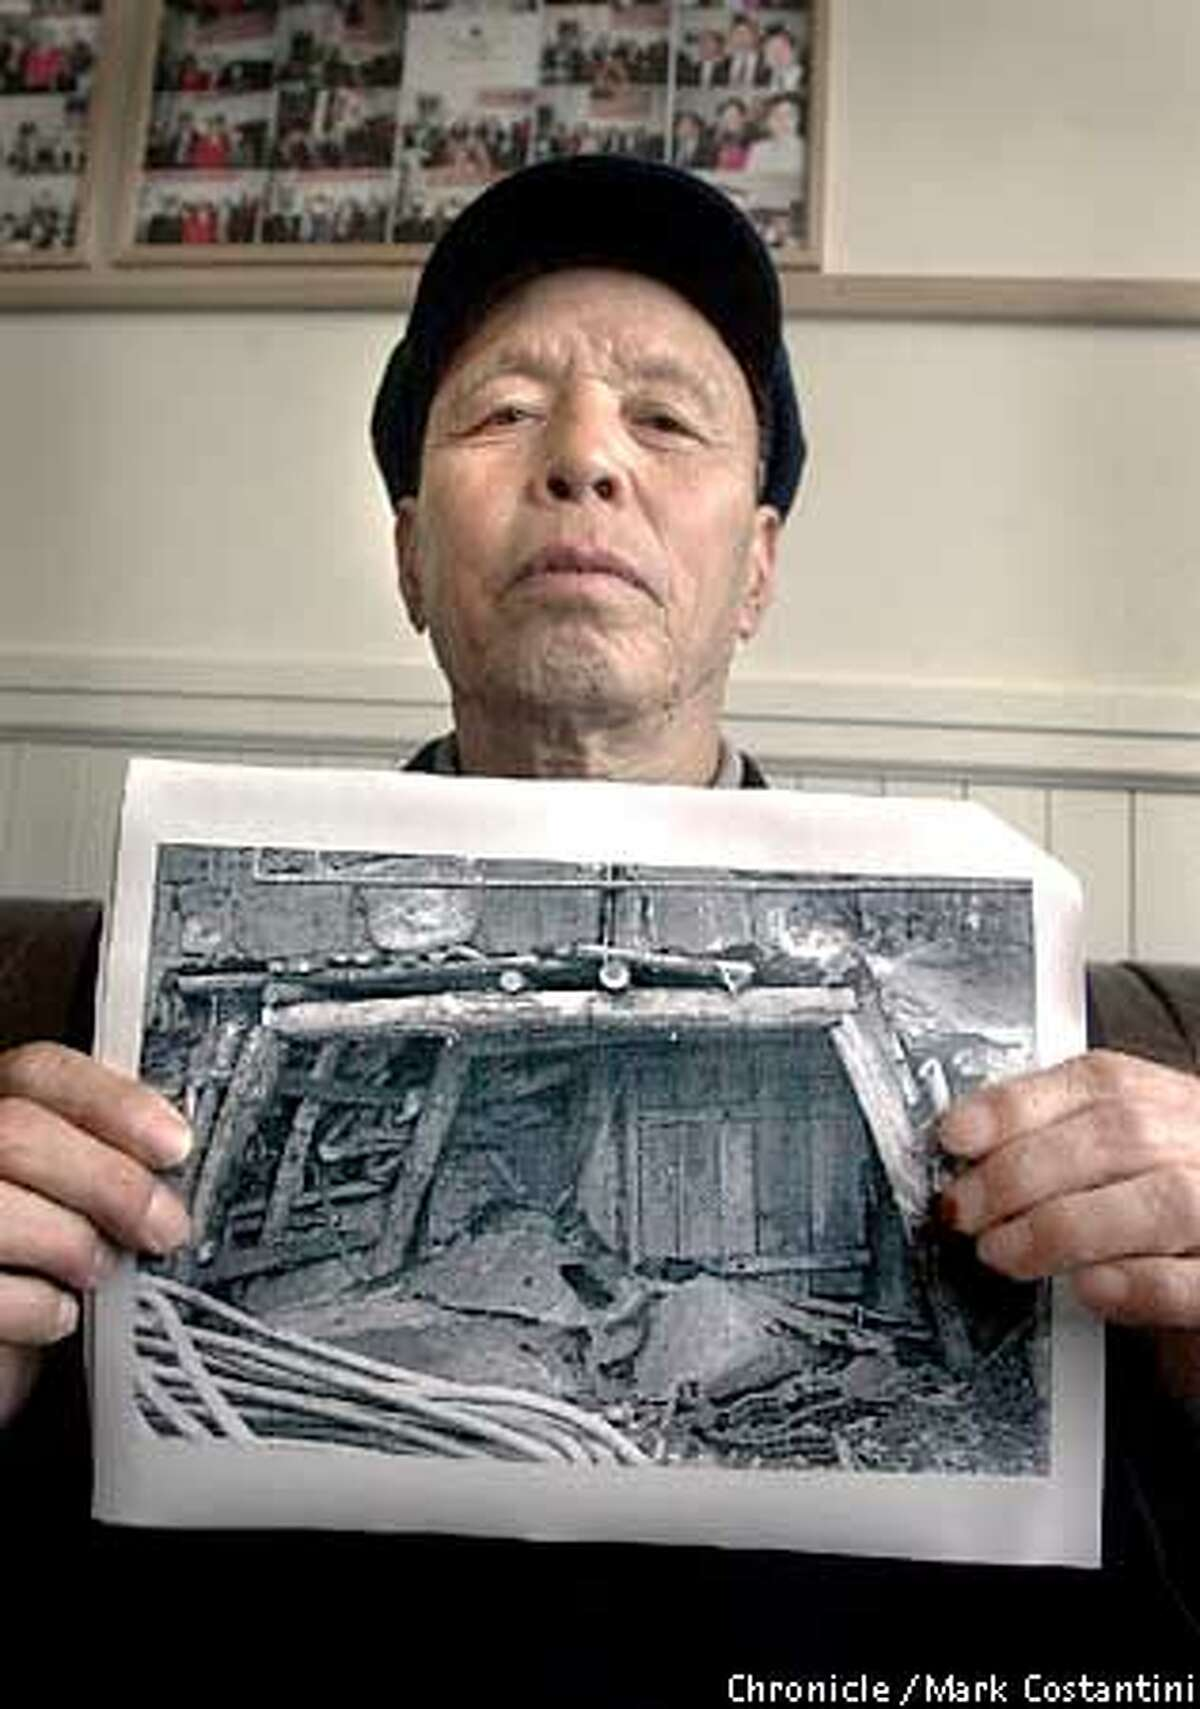 Yun De Li, a Chinese citizen, holds a picture of a cole mine in Japan he was forced to work in during World War II. Press conference with people who accuse Japanese firms Mitsubishi and Mitsui of using Chinese citizens and American WWII POW's as slave labor during that war. 5/2/03 in San Francisco. MARK COSTANTINI / The Chronicle